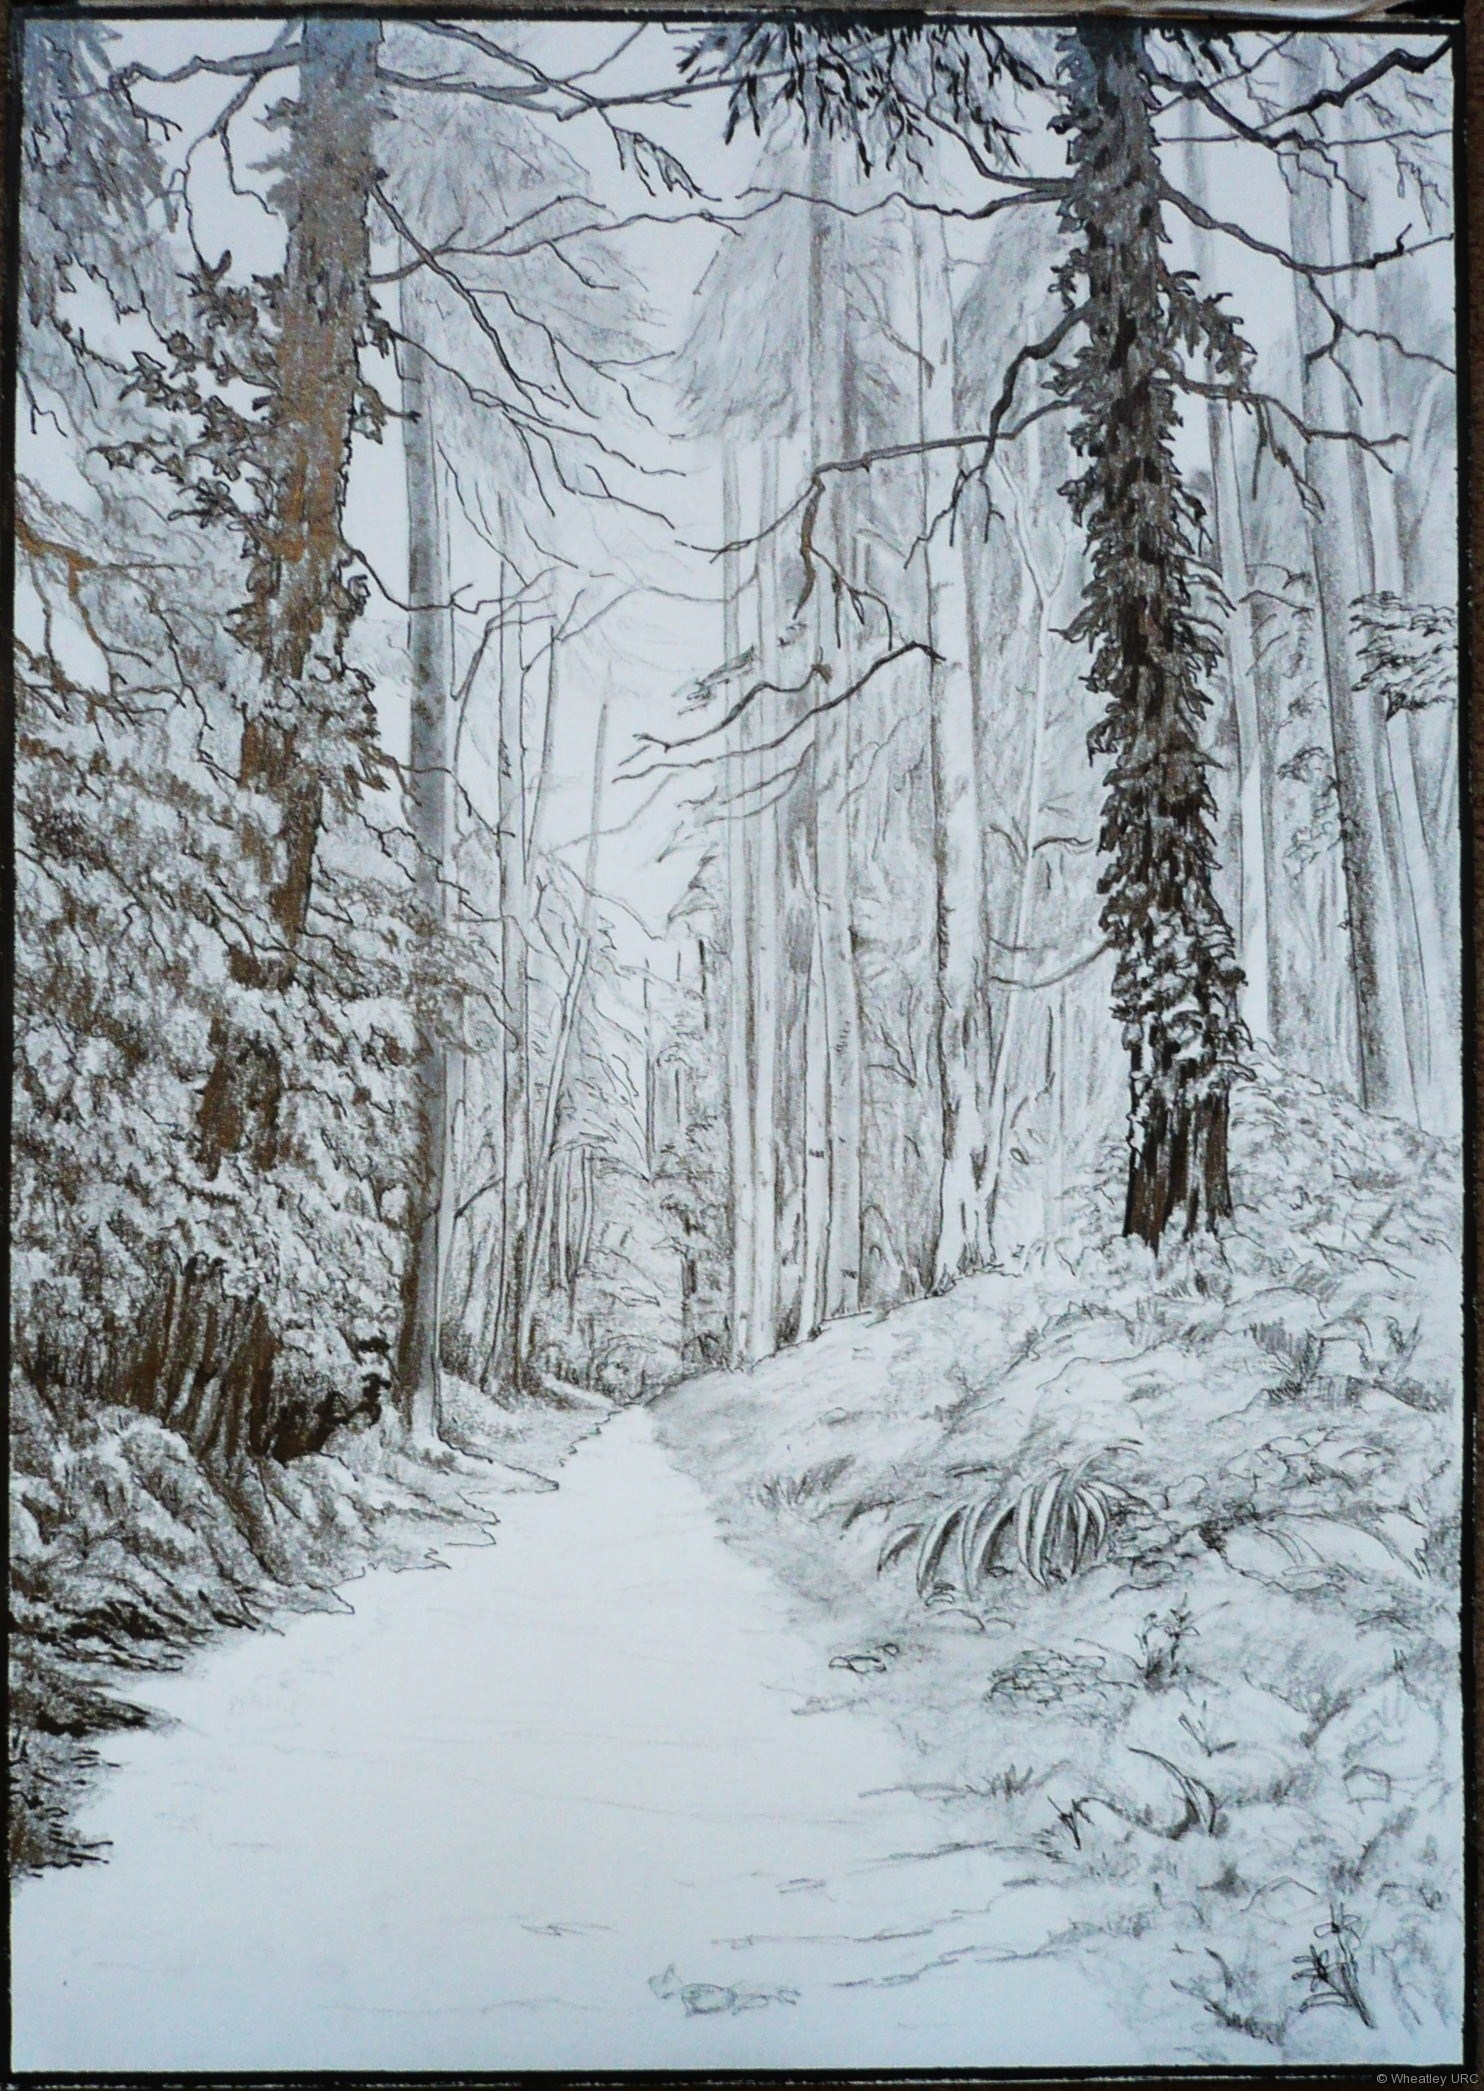 Christine Bainbridge - Woodland sketch